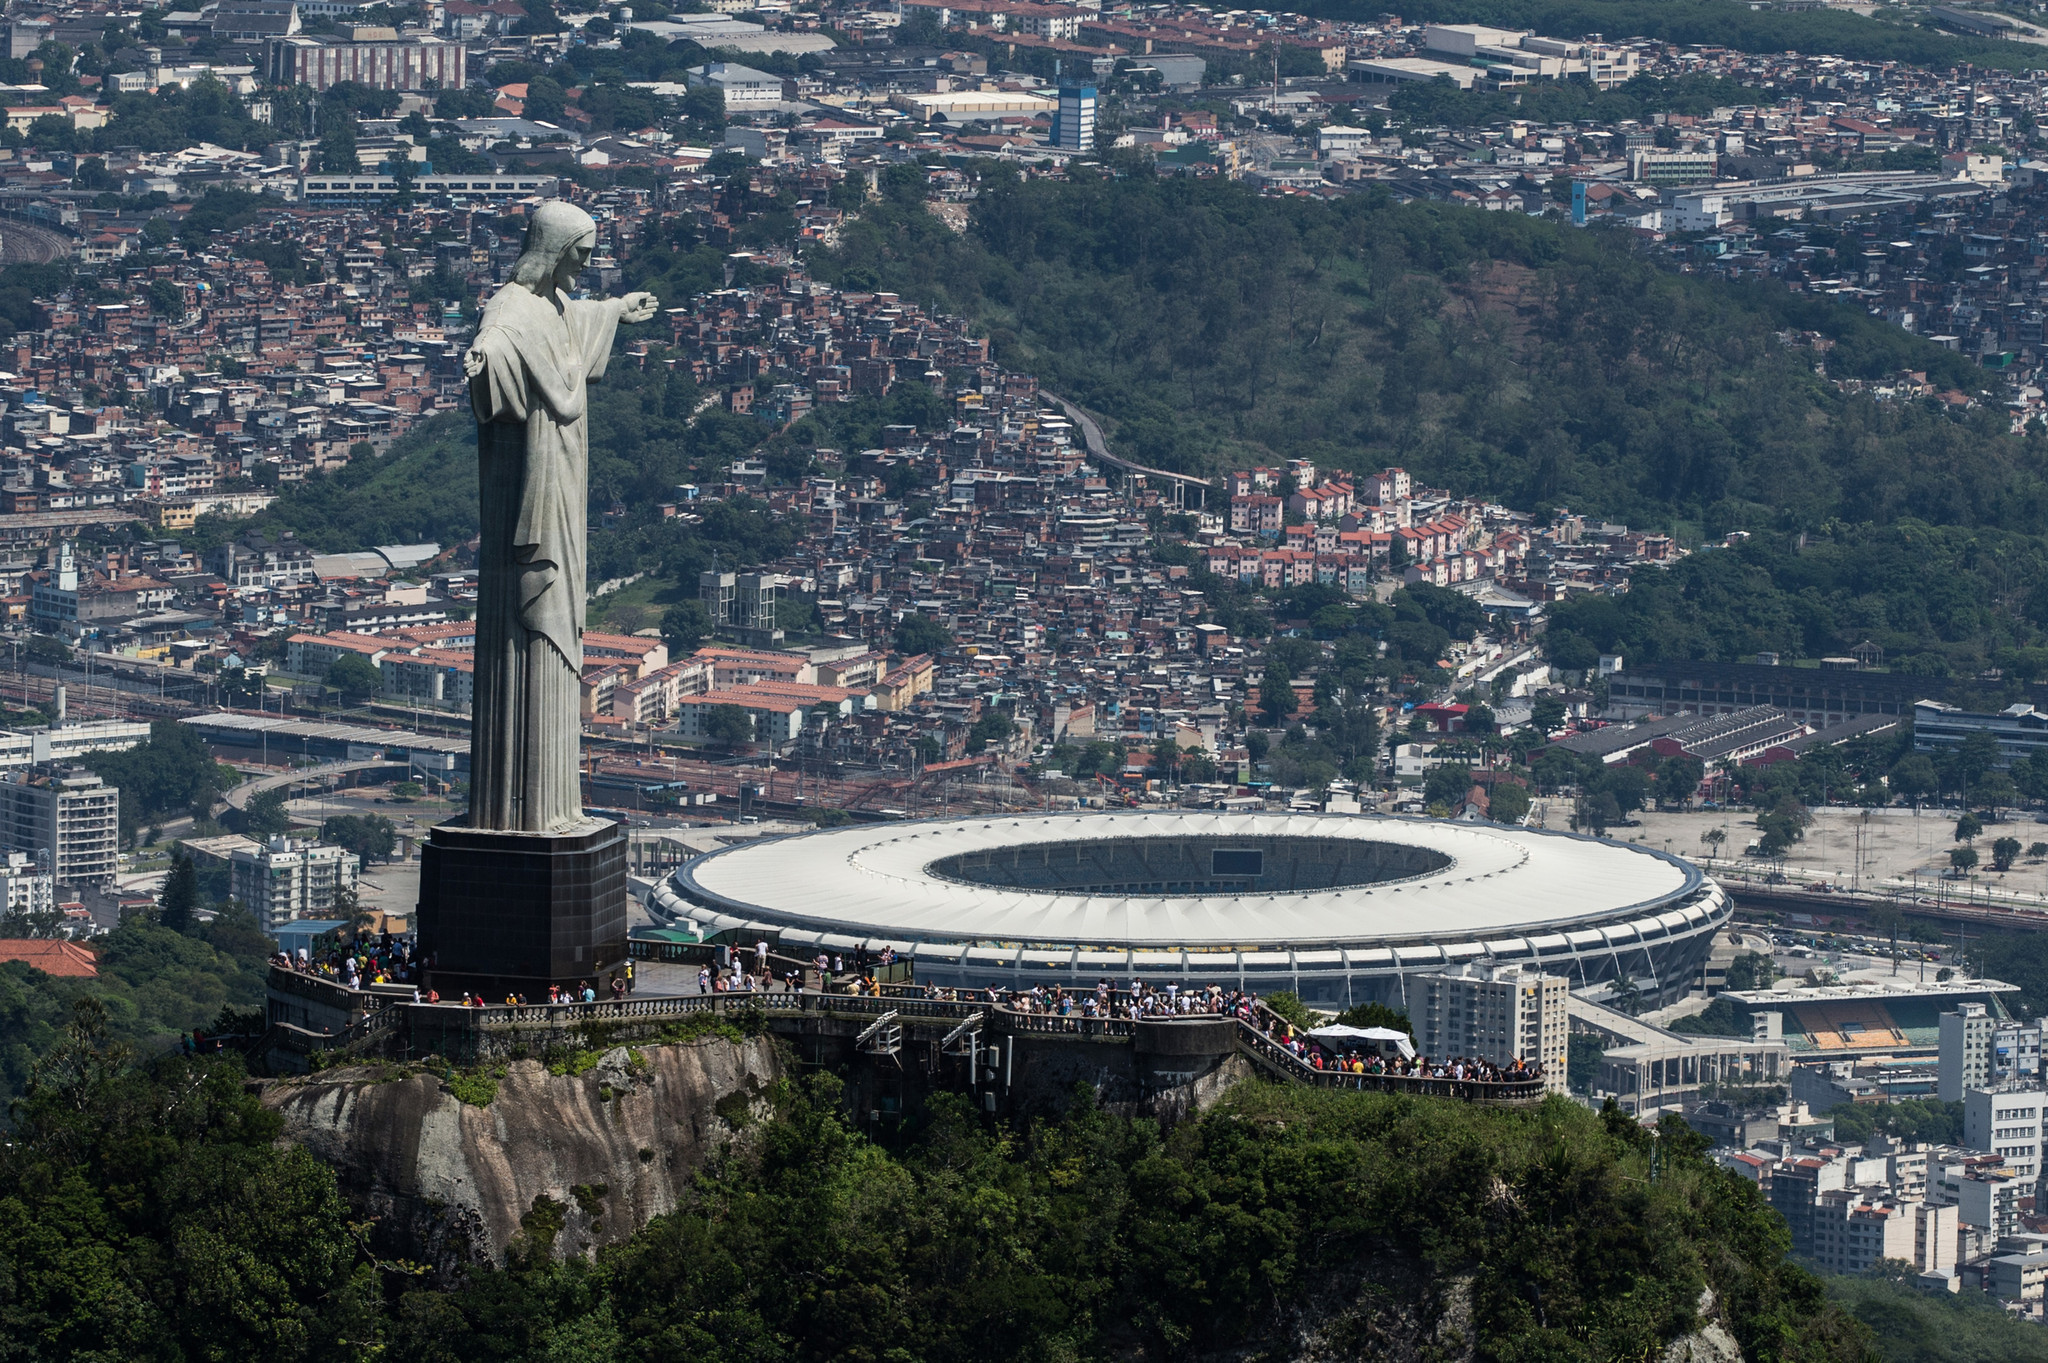 Rio Olympics must face reality of Brazil's political ...